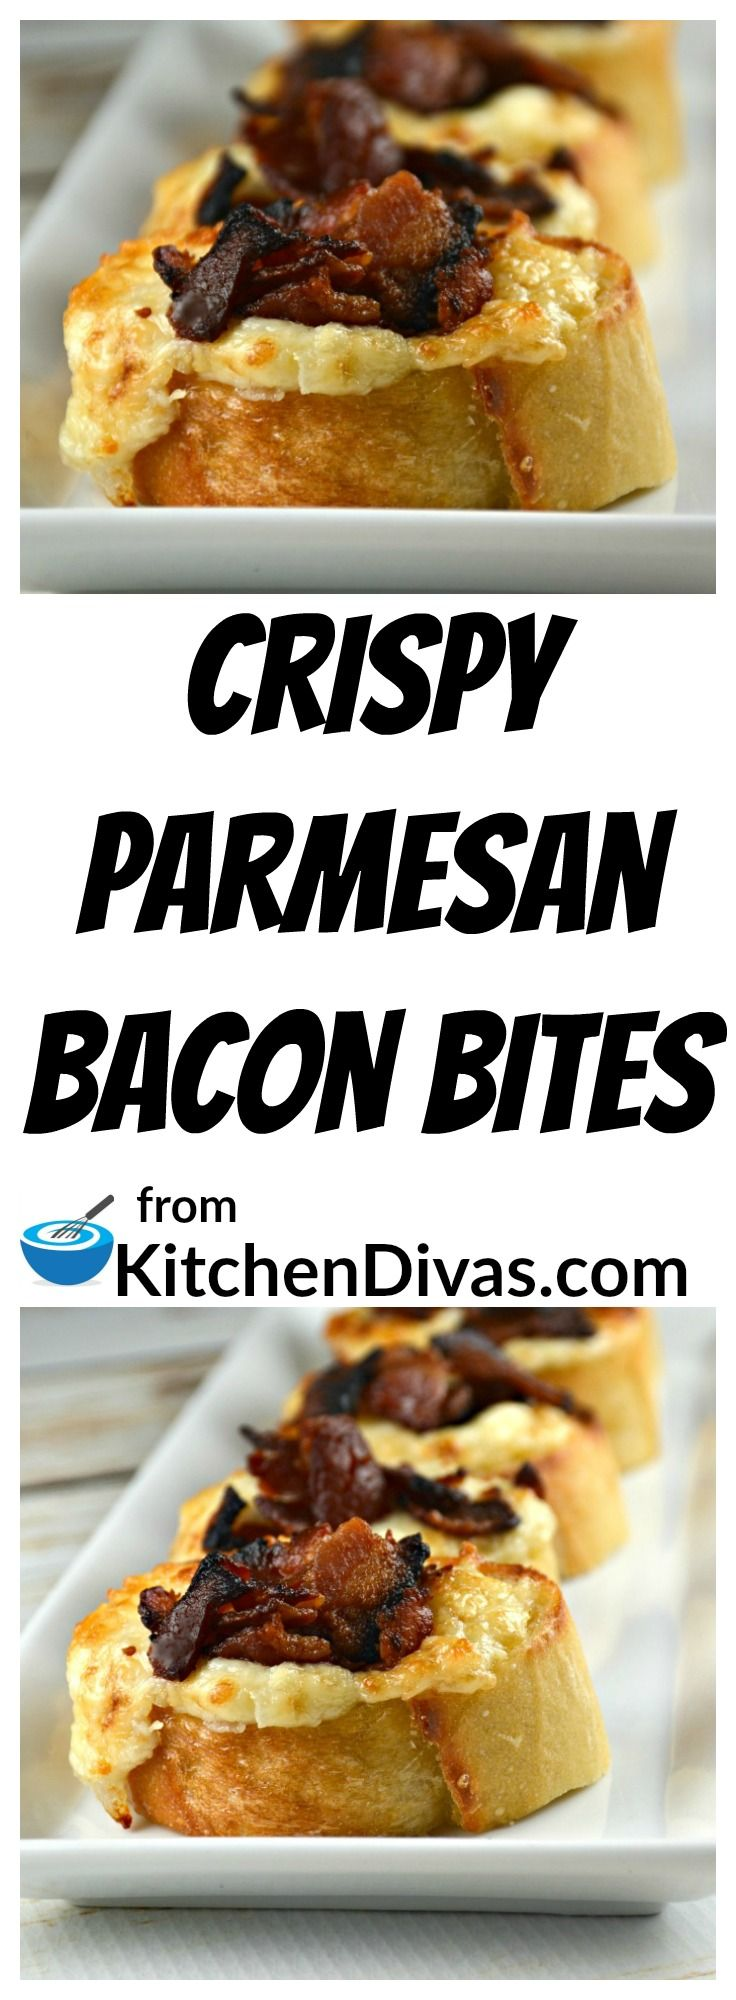 These Crispy Parmesan Bacon Bites are one of my favorite appetizers of all time! Perfect for any time of year! We have enjoyed these while watching a sporting event and served them for a variety of family occasions! Never any leftovers! Cheese and bacon. Need I say more? These bites are perfect for any audience. Kids and adults alike will eat all of these up!